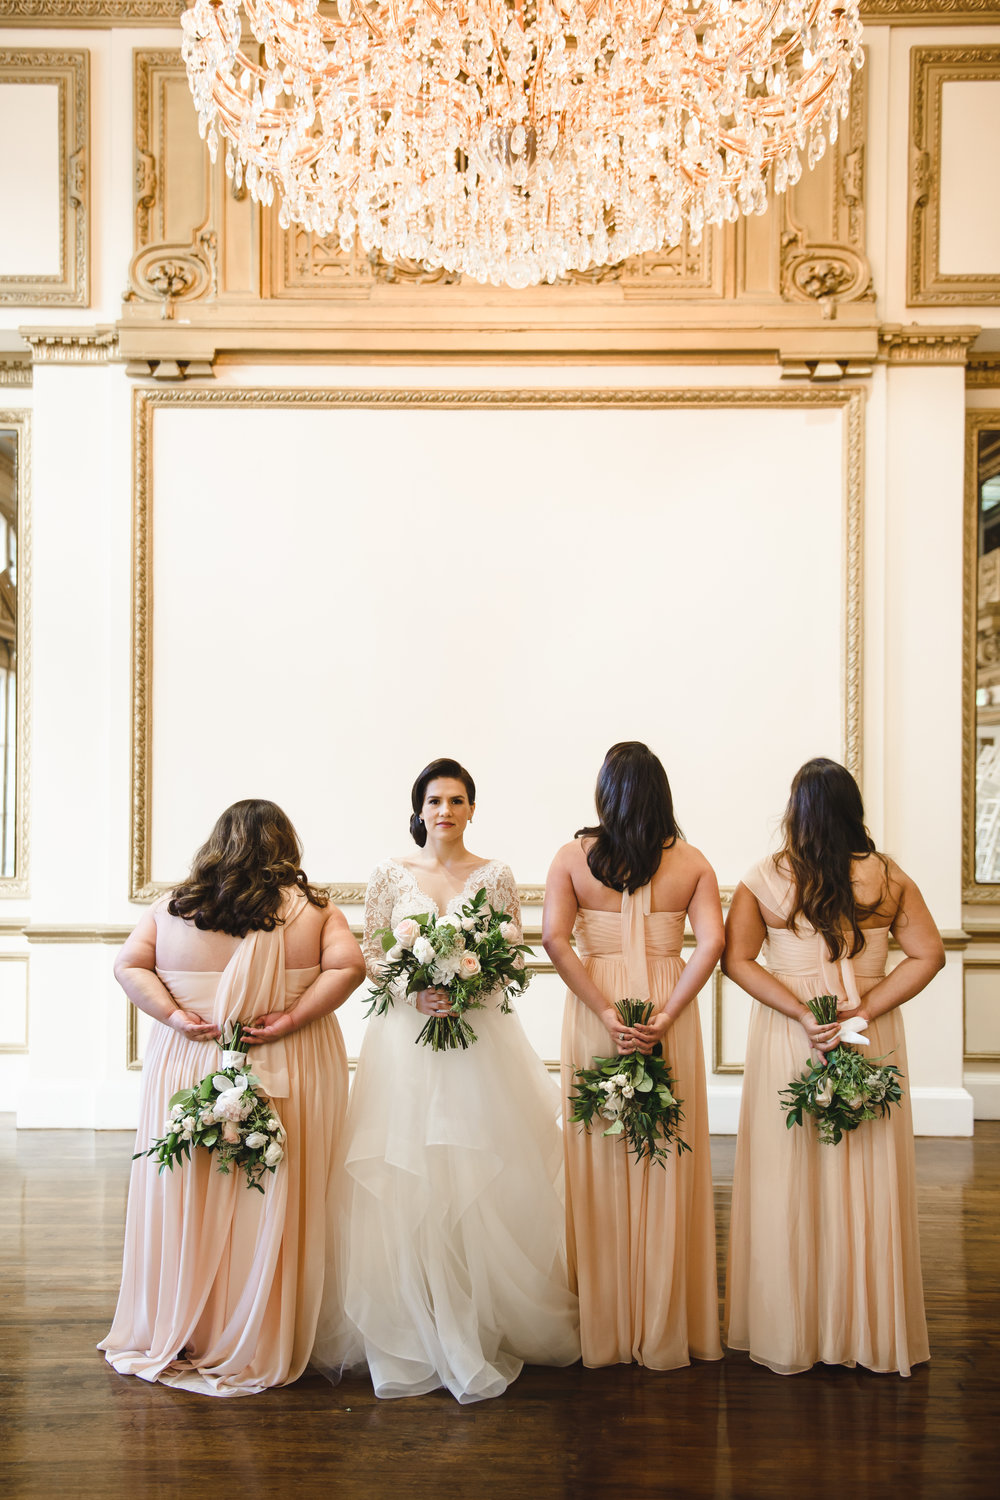 Bridesmaids photo ideas with bouquets #Lrqcfloral #dtla .jpg